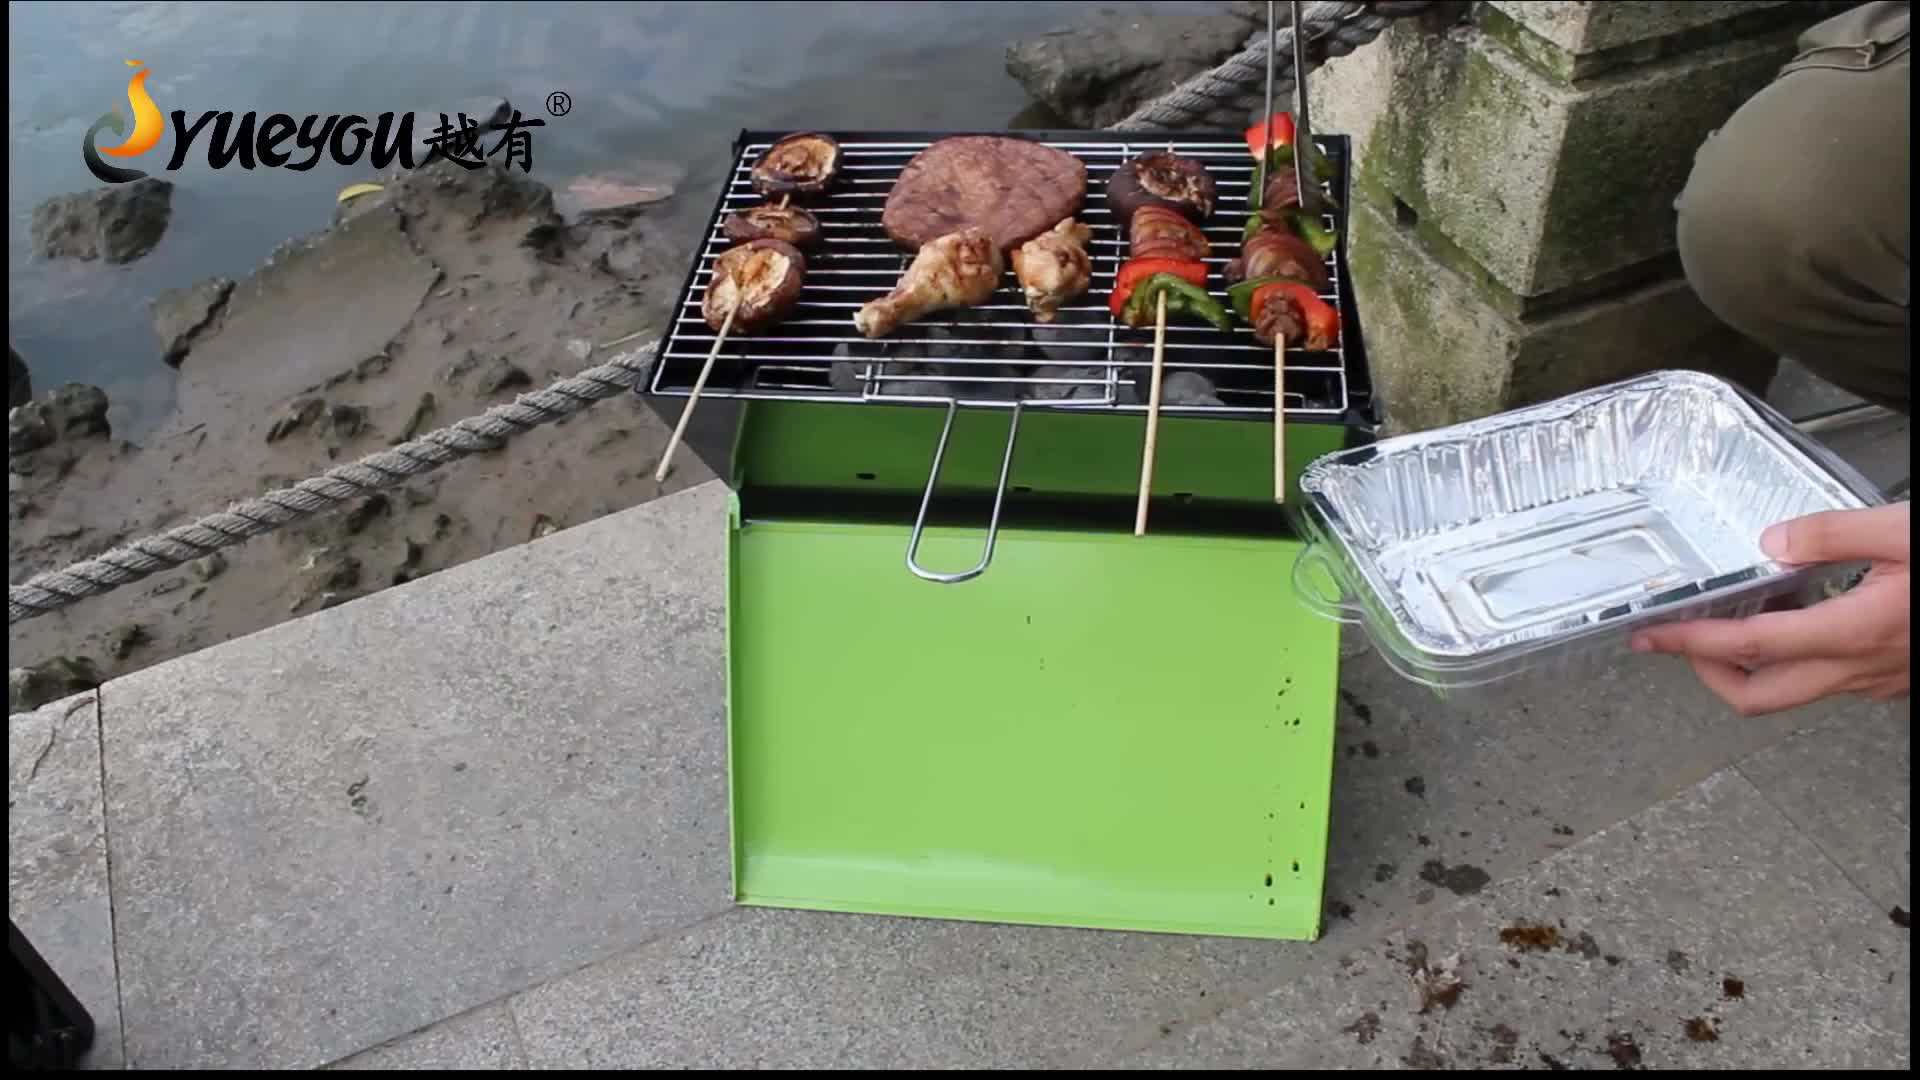 In Voorraad Opvouwbare Draagbare Propaan Bbq Gas Grill